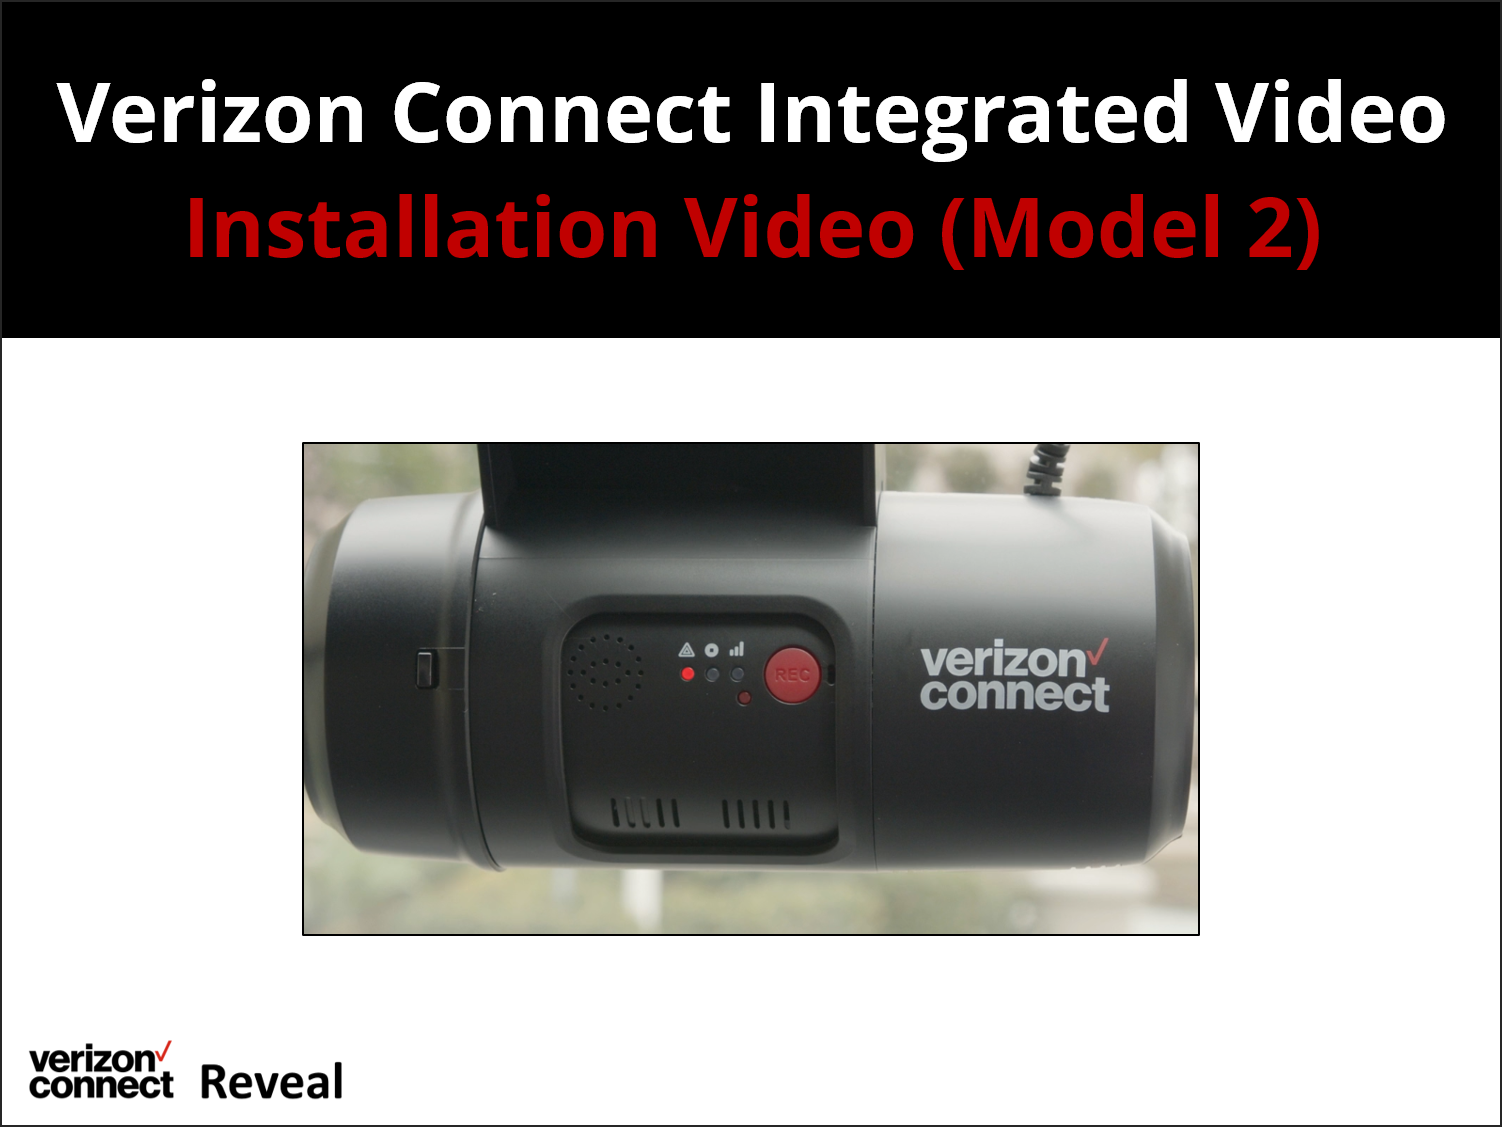 Verizon Connect Integrated Video Installation